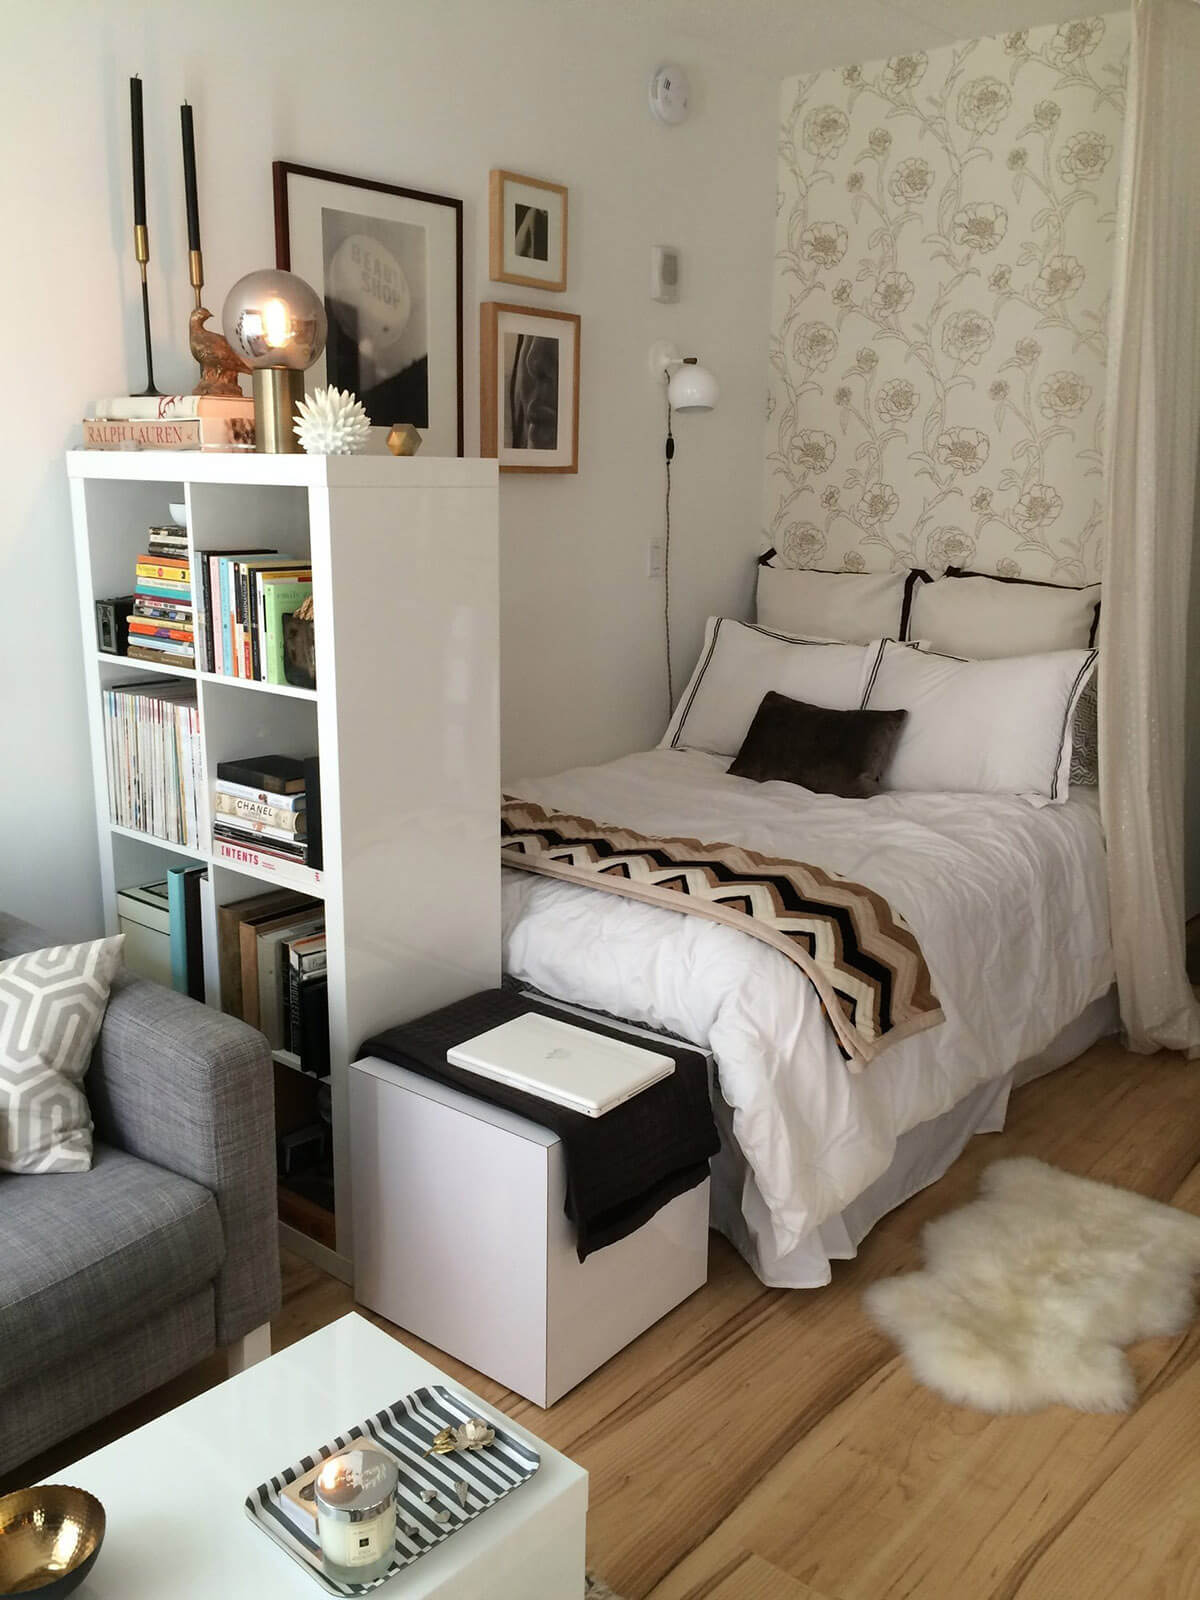 Amazing Small Bedroom Ideas With A Tall Bookshelf